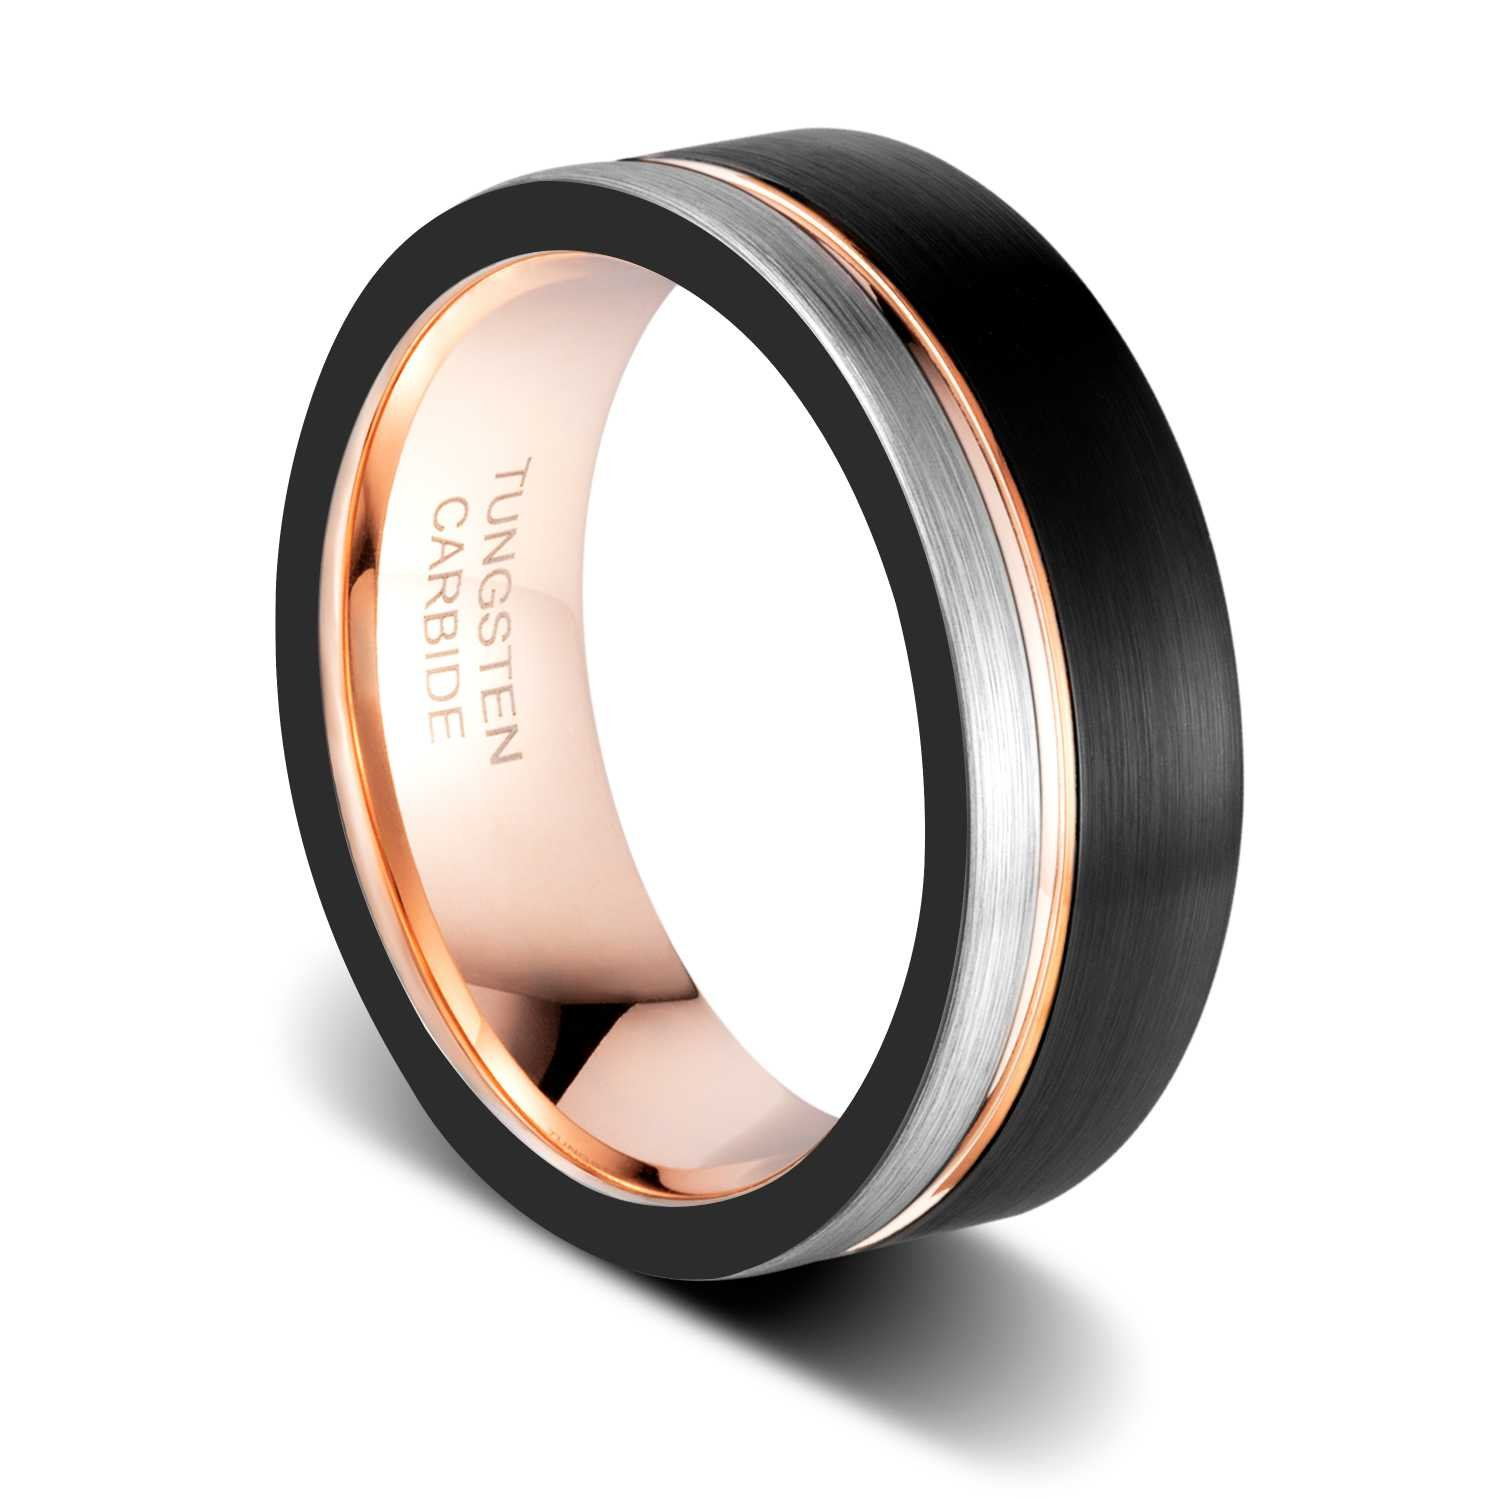 TUSEN JEWELRY 8mm Black and Silver Brushed Thin Side Rose Gold Plated Groove Flat Edge Comfort Fit Tungsten Ring Size:6